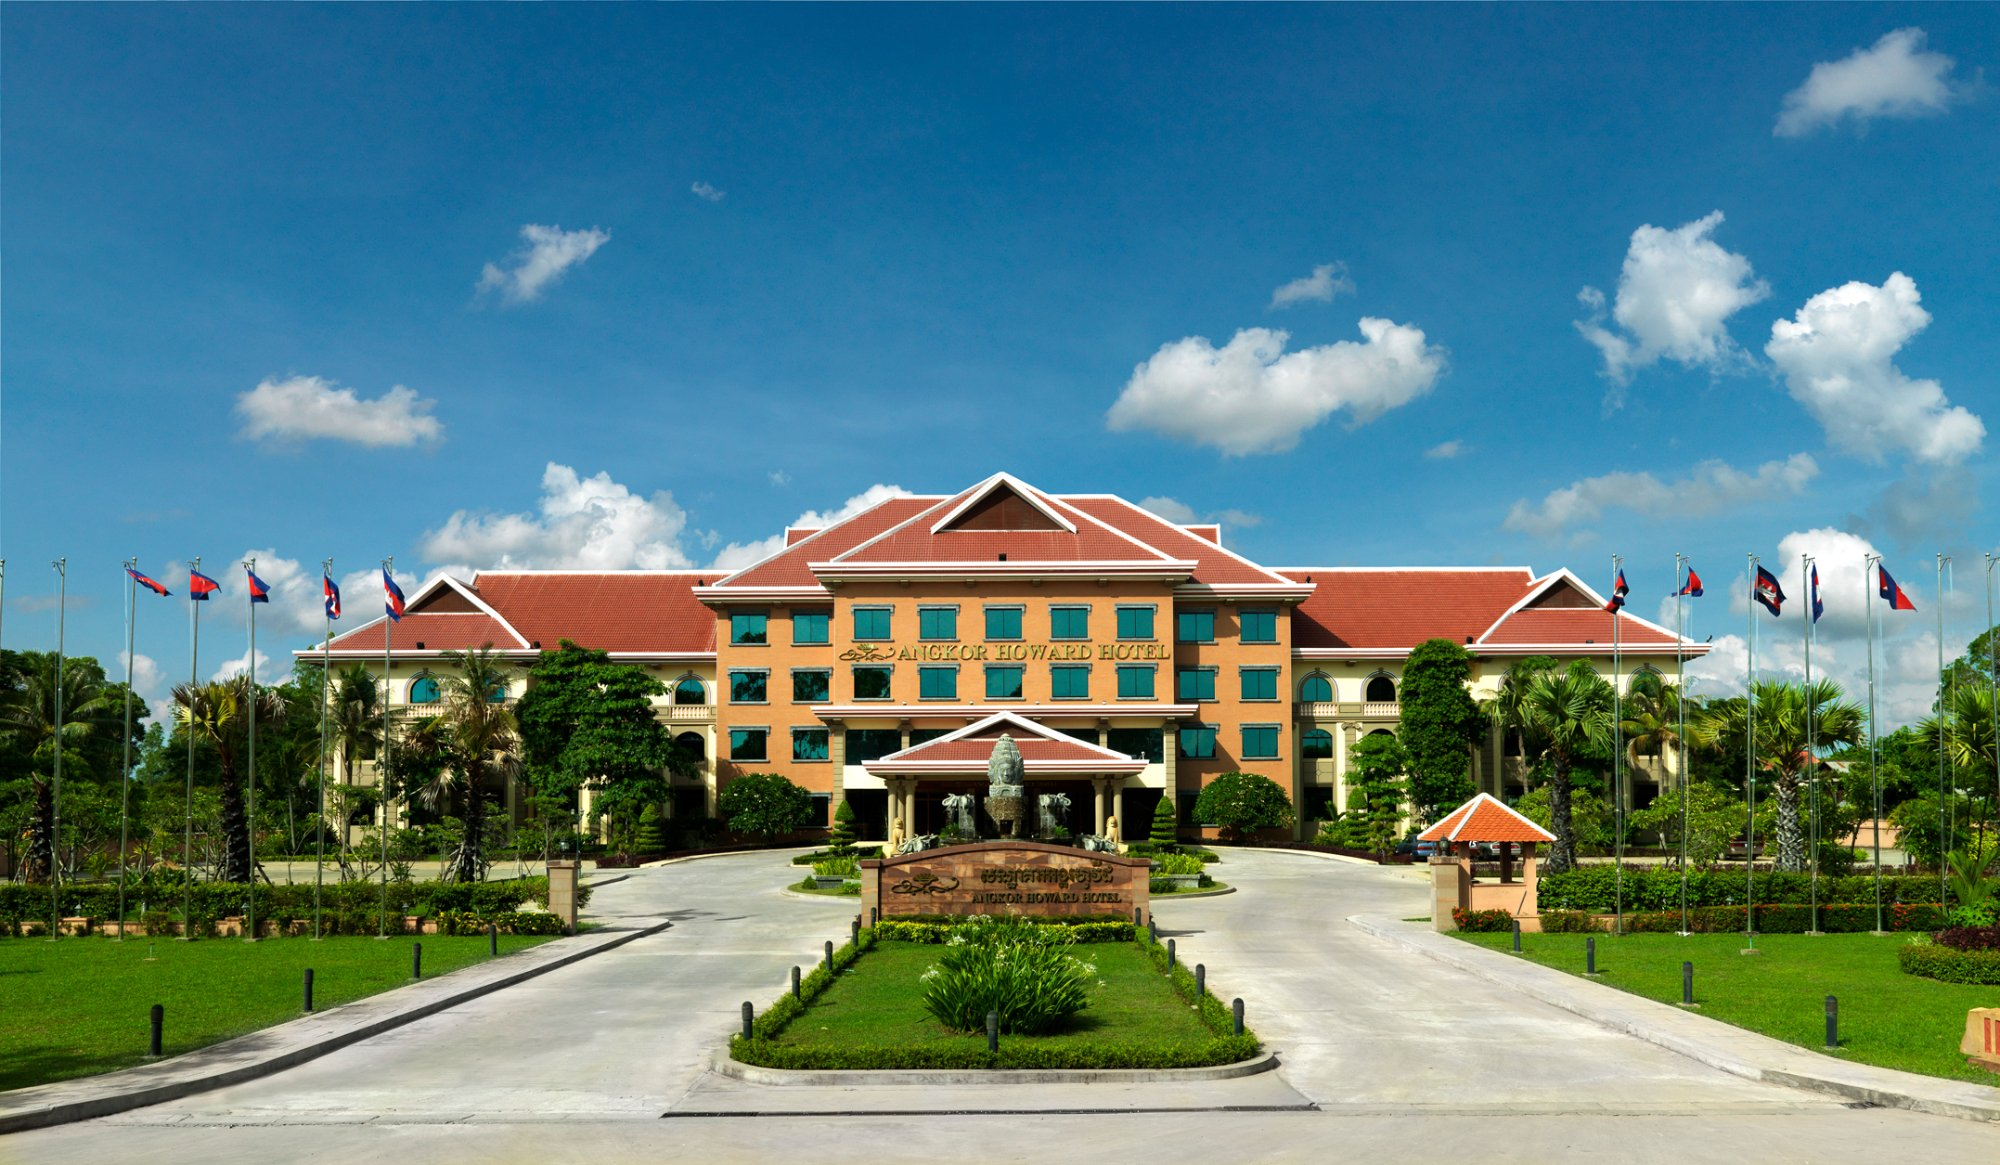 Angkor Howard Hotel and Convention Center